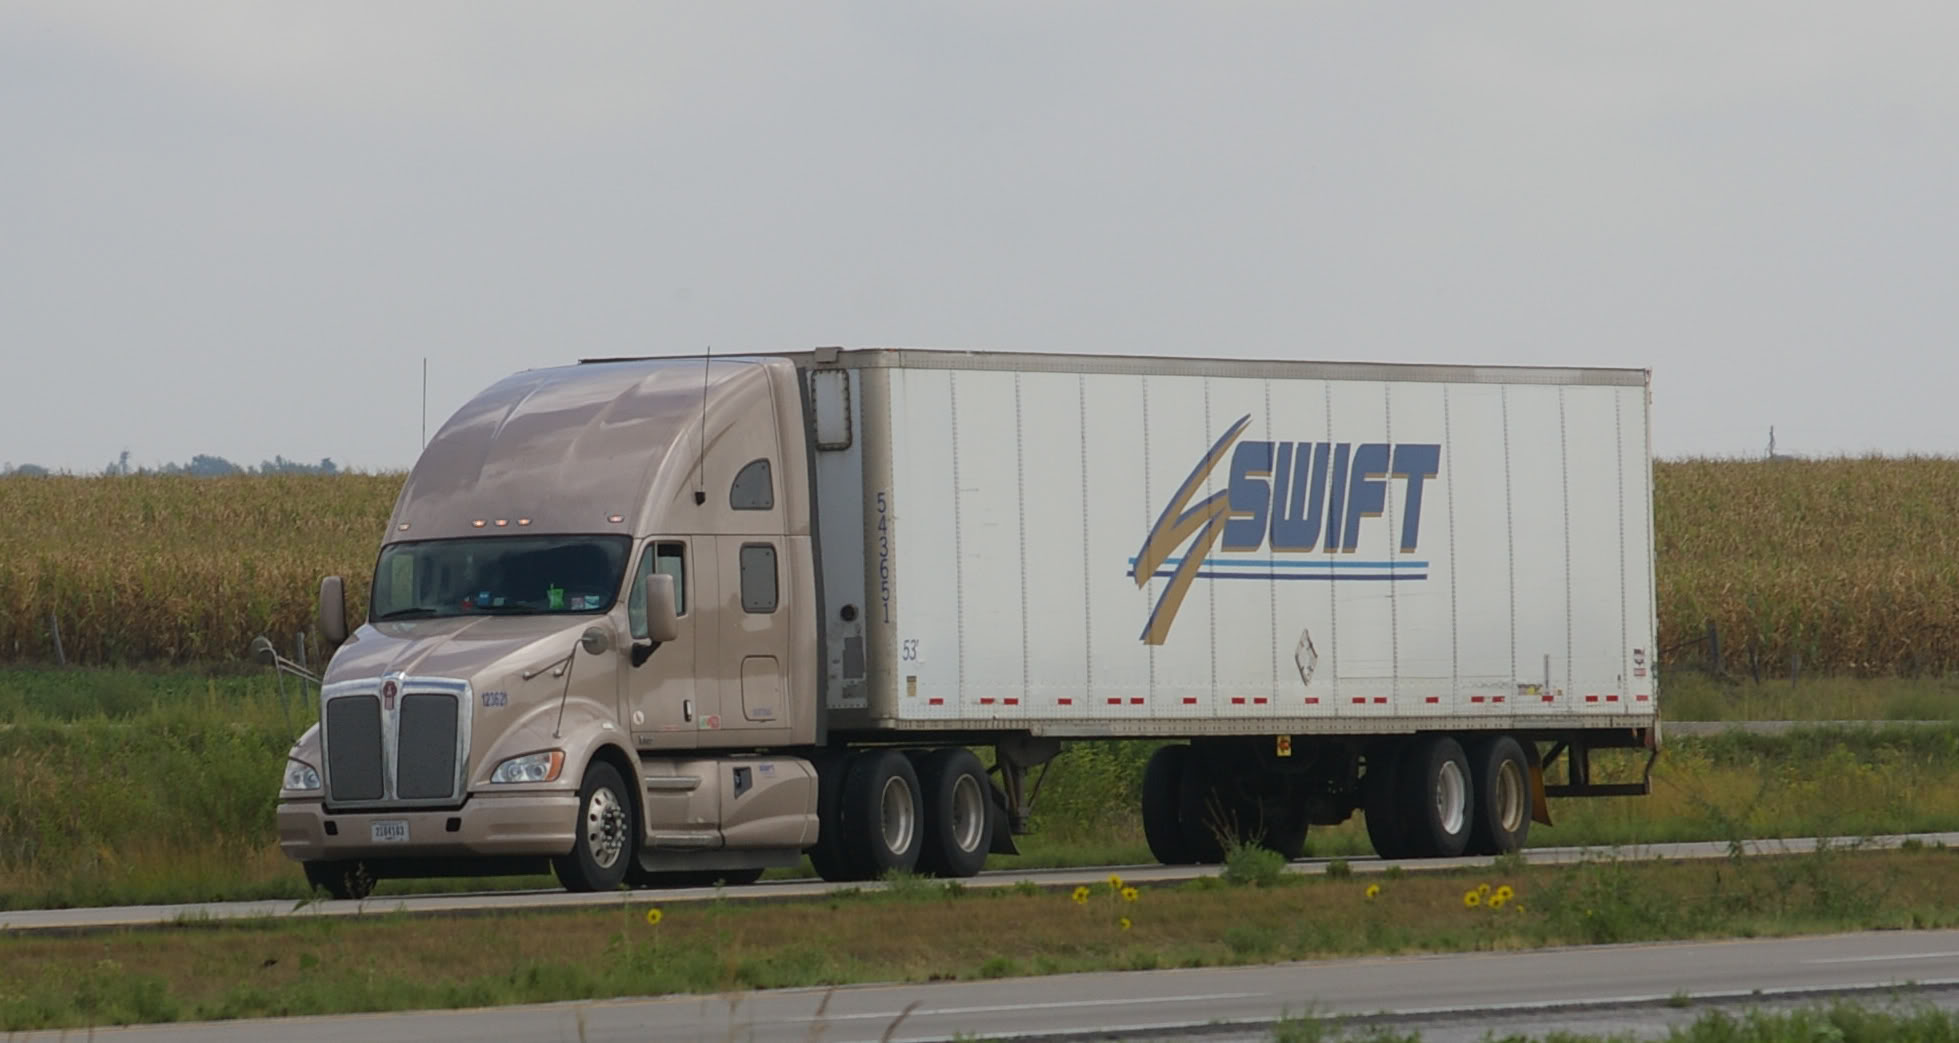 Knight and Swift Transportation Join Together To Form Trucking Giant